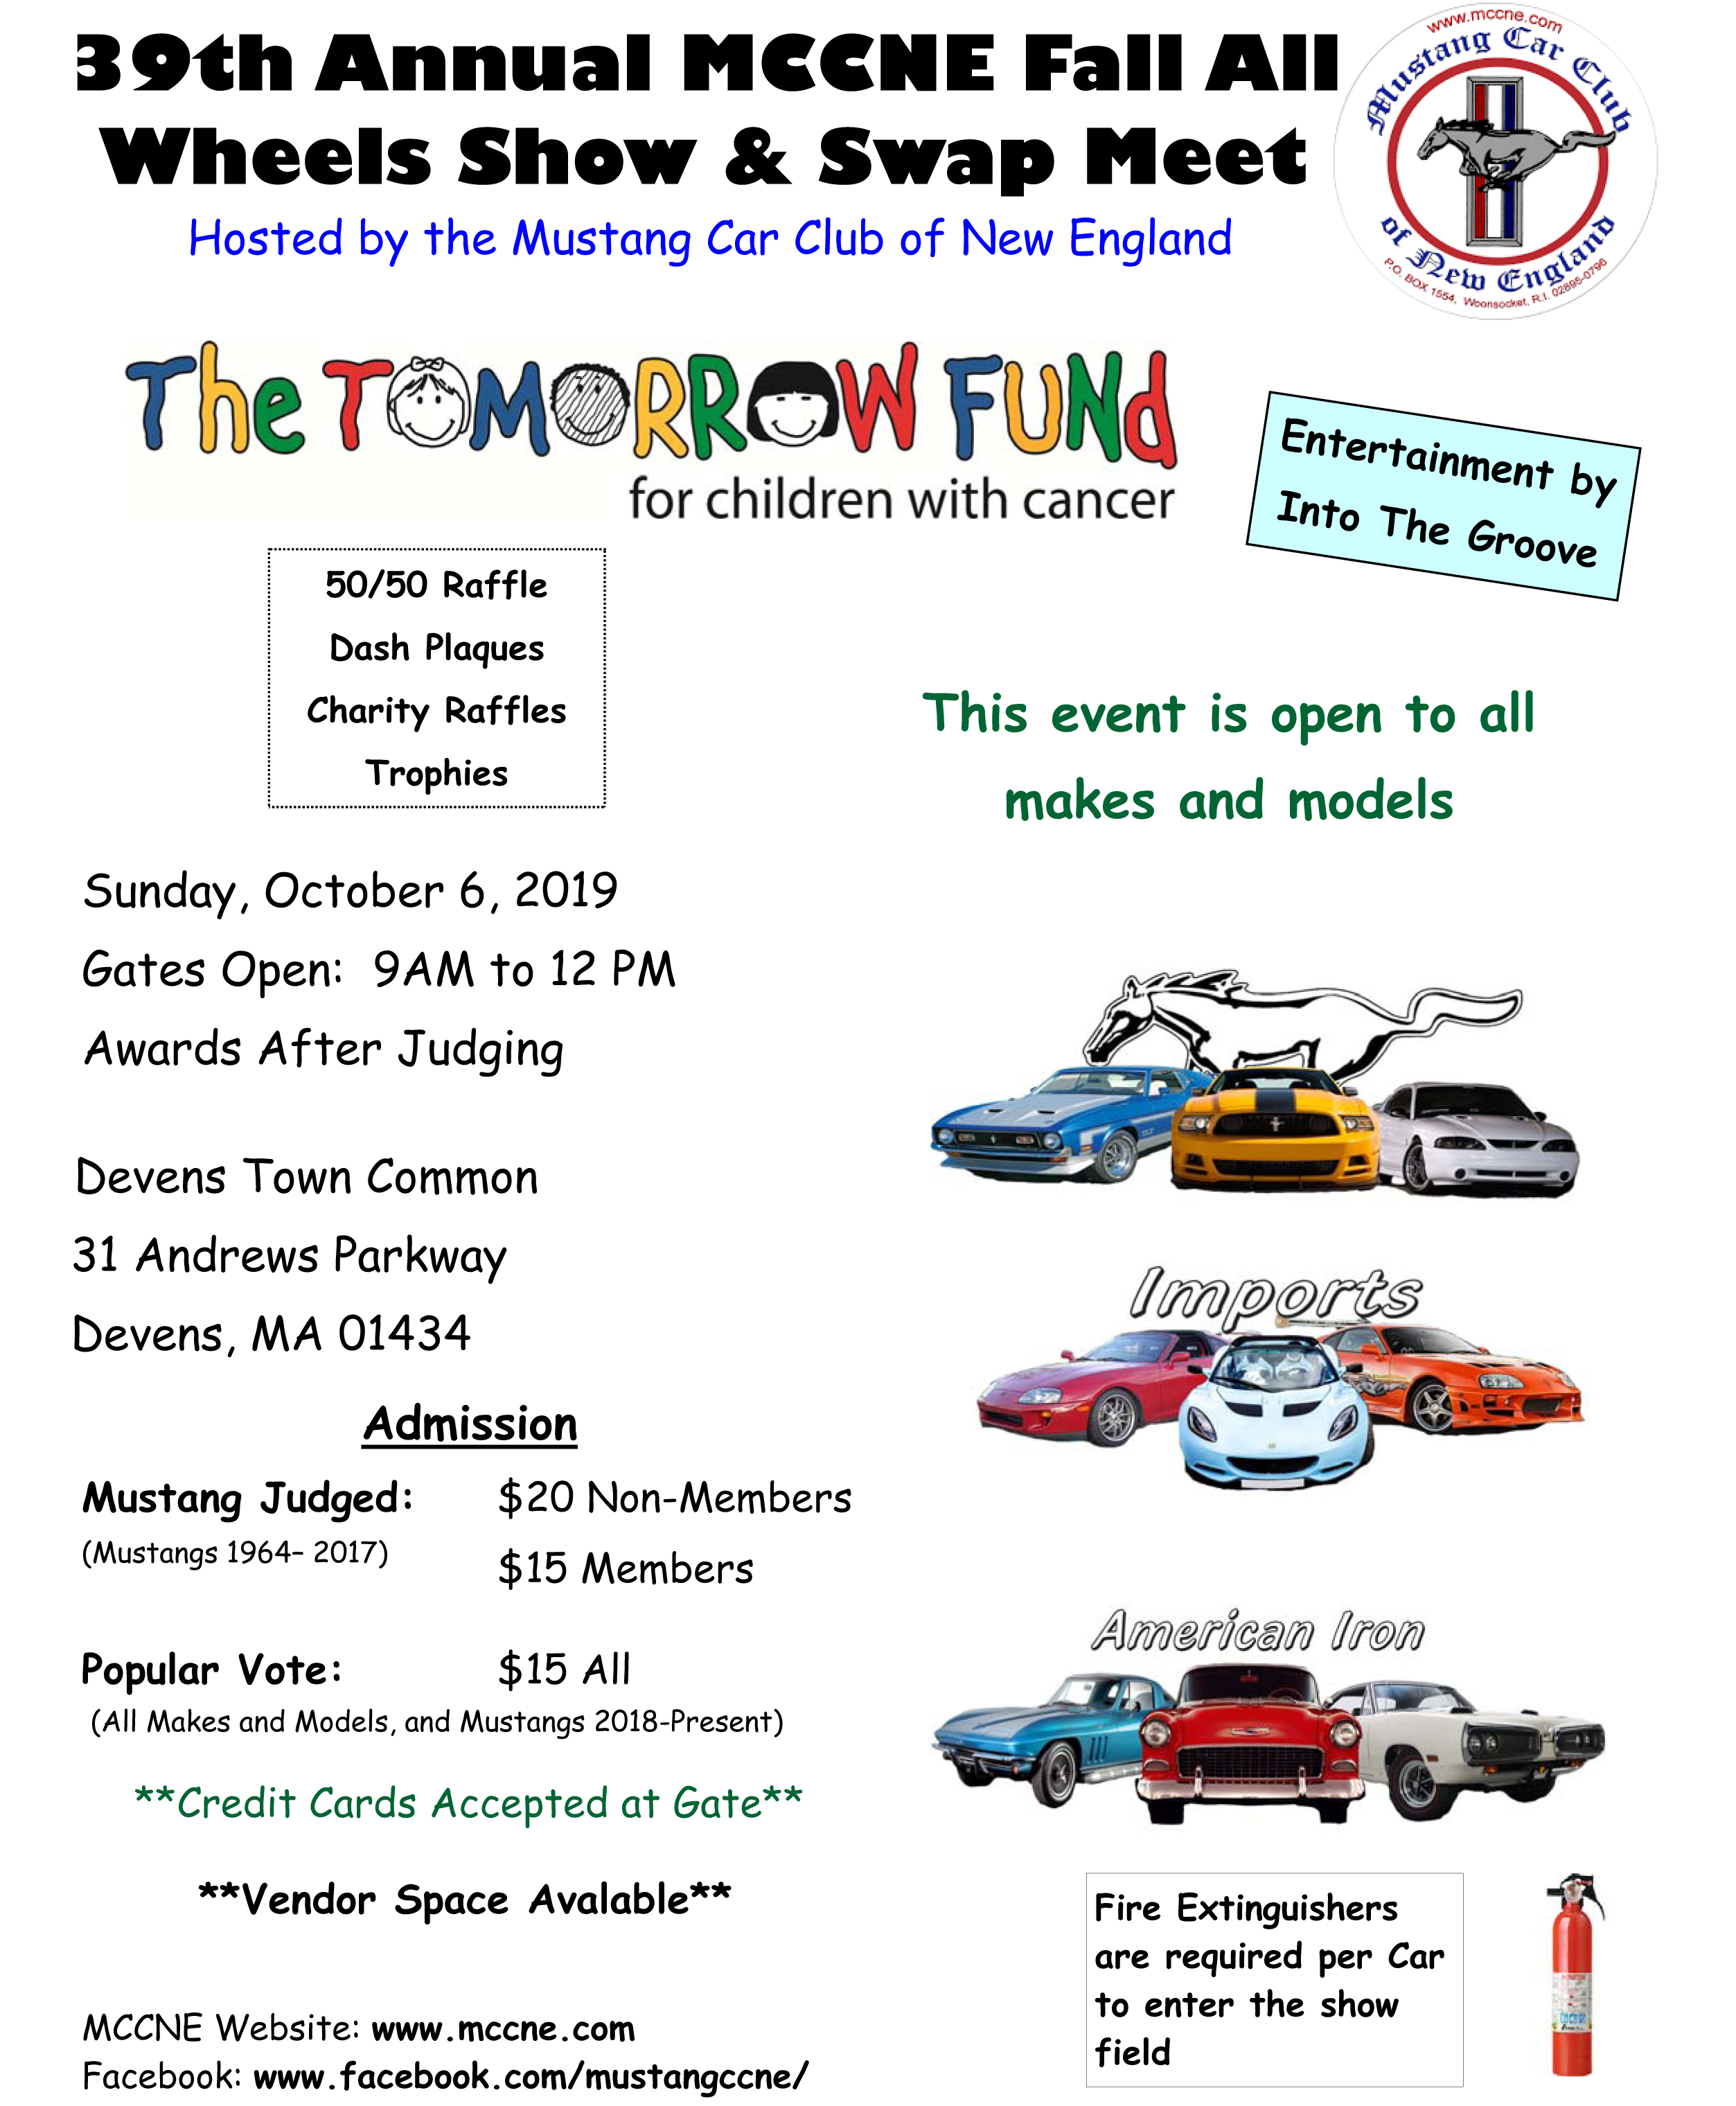 Mustang Car Club of New England - Events